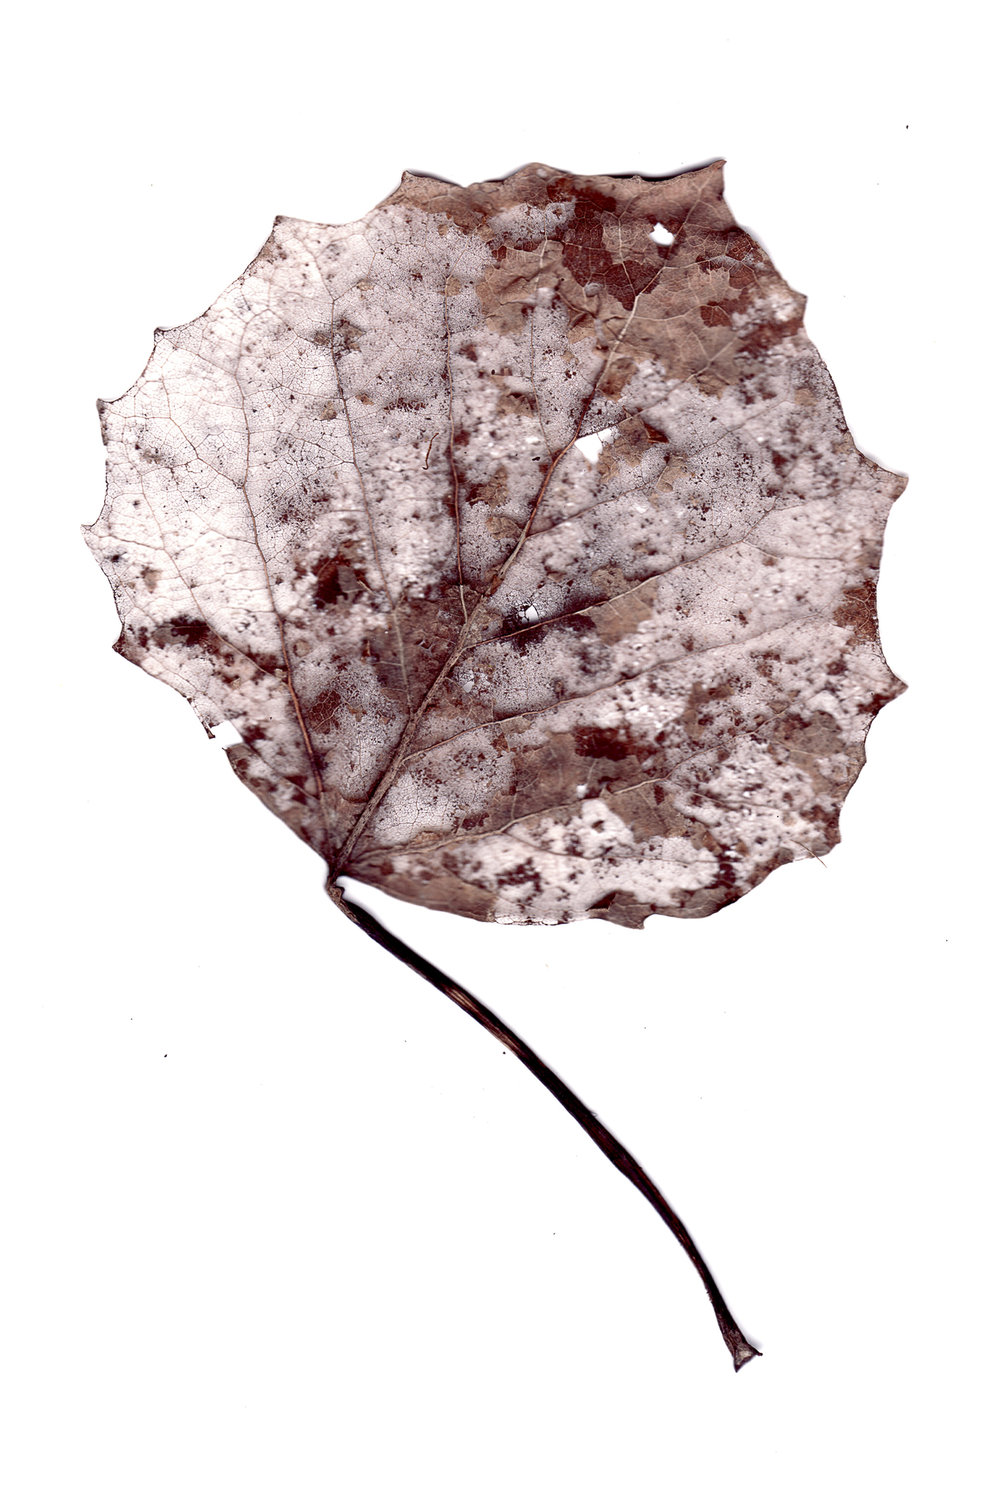 Collected Poems, Aspen Leaves0020  , Ink Jet print on Washi paper, 13x27 inches, 2007, ed. 3